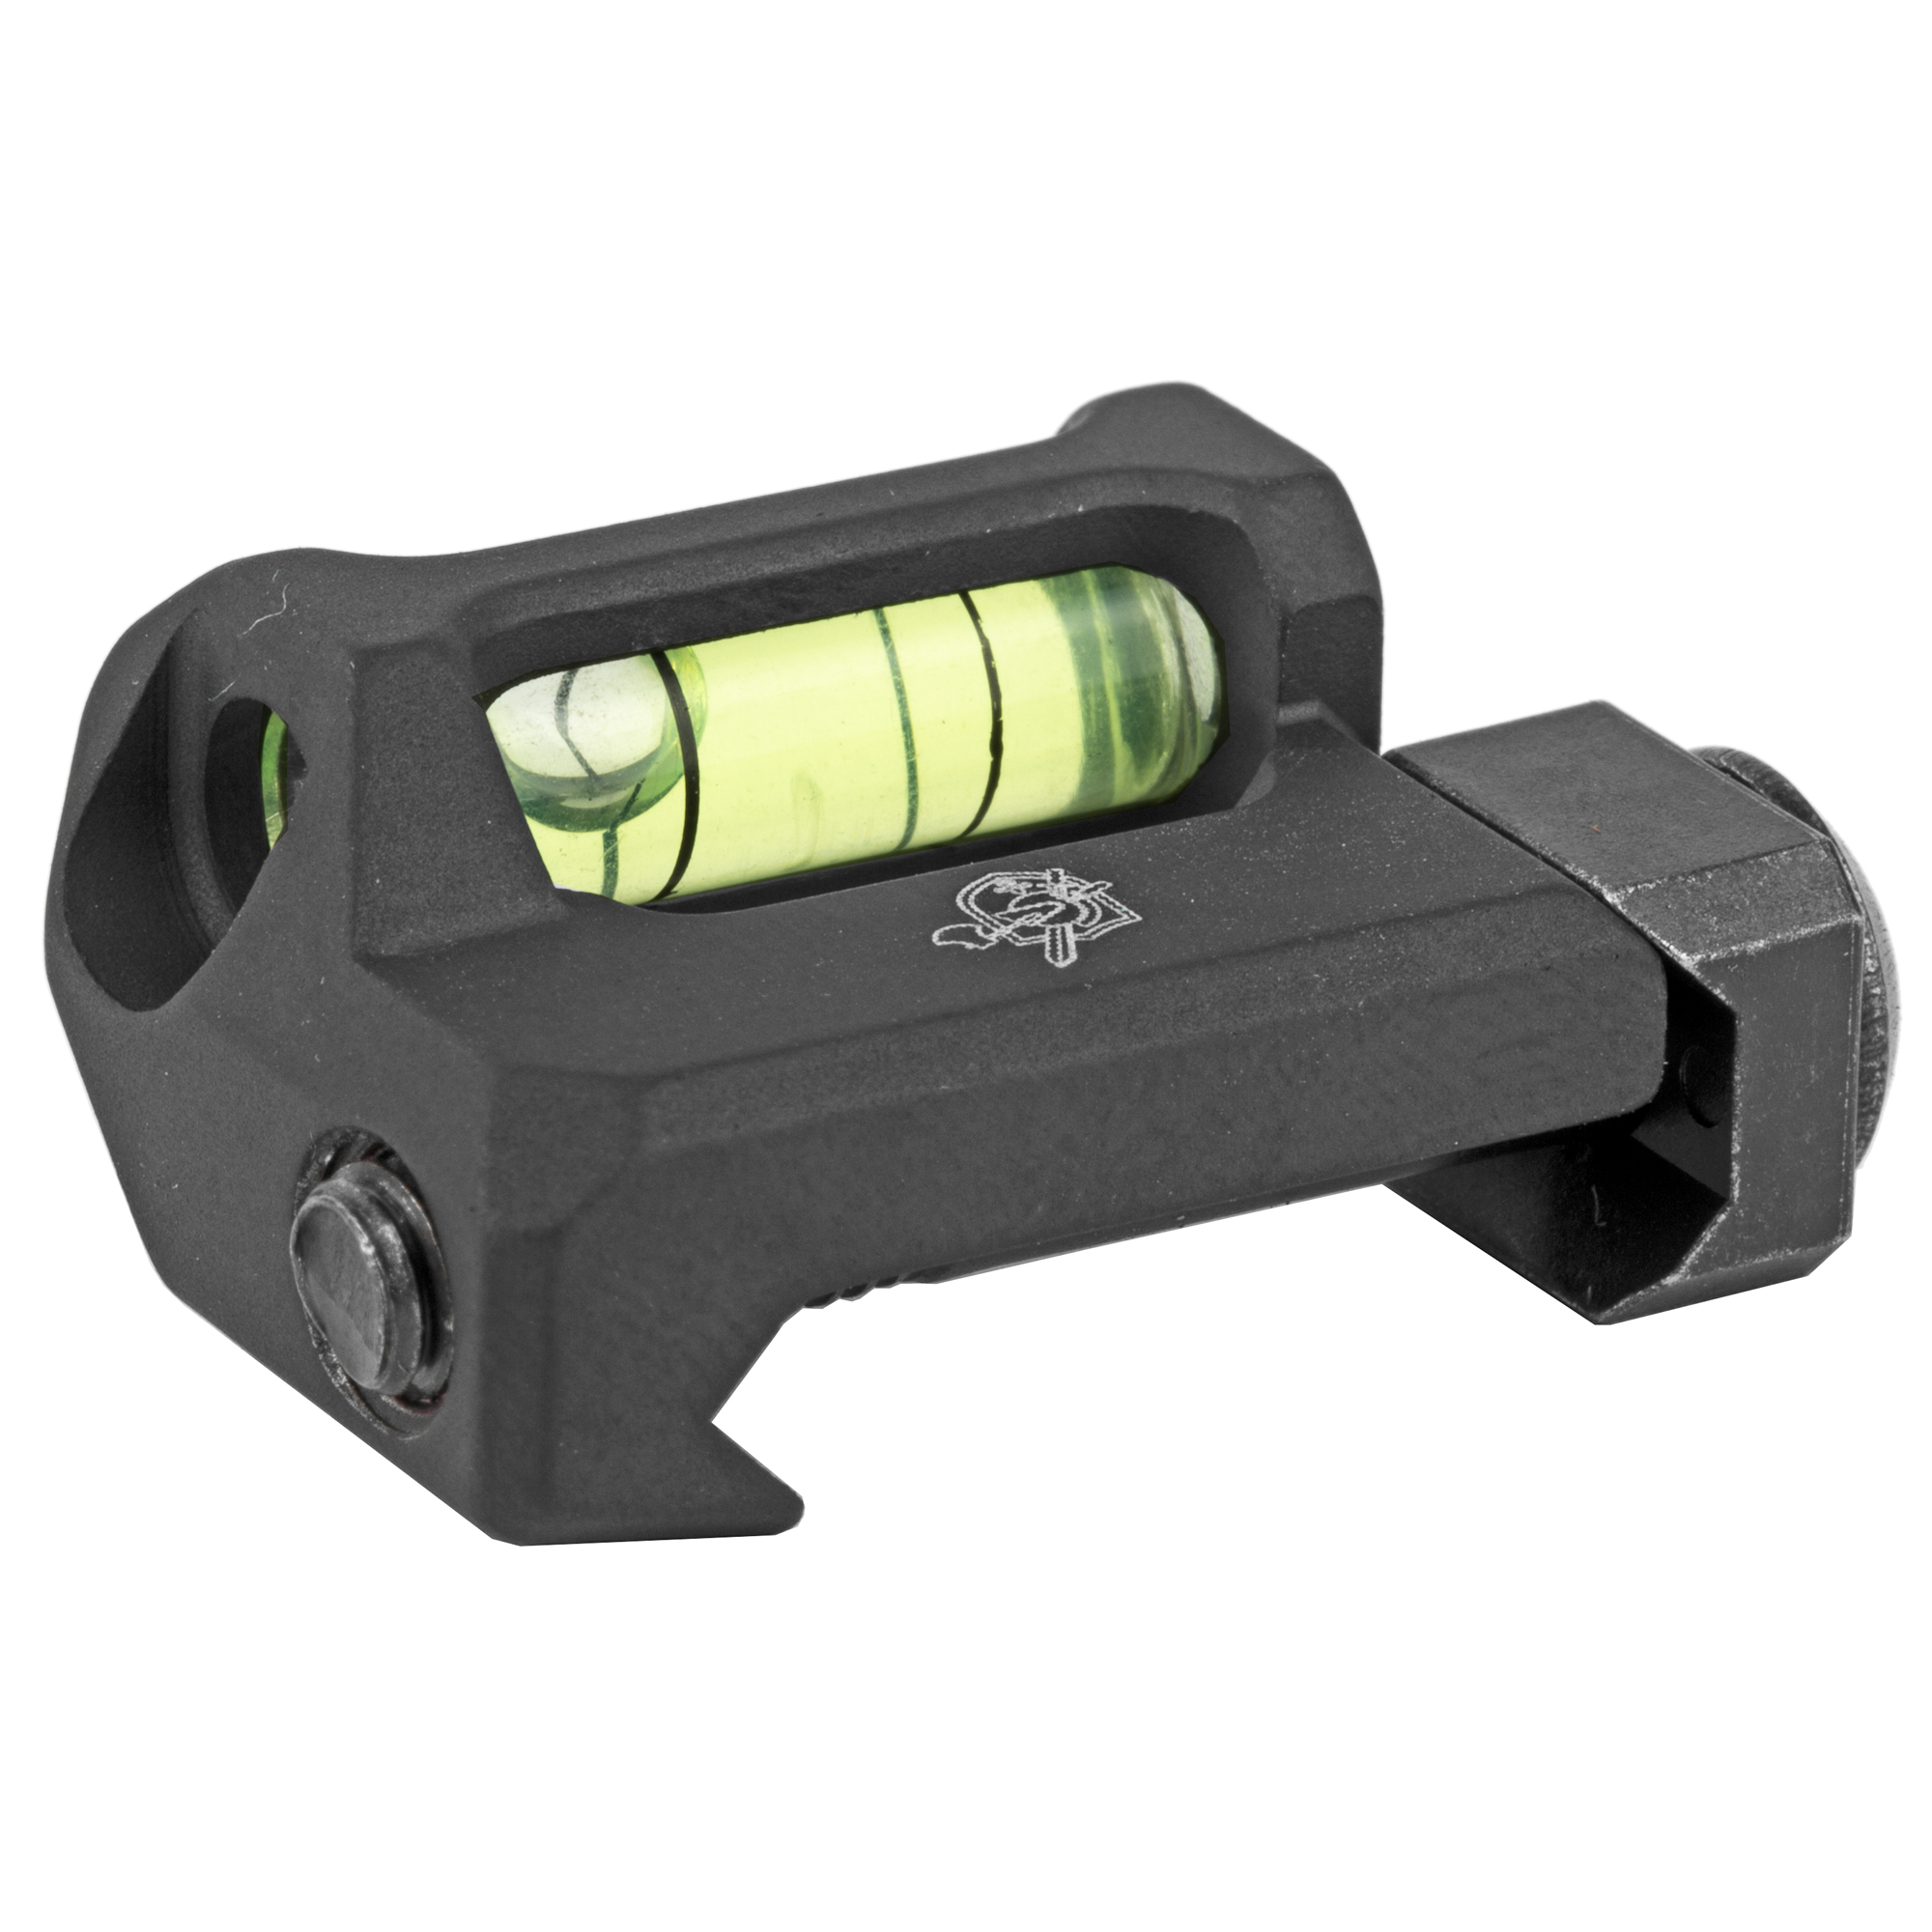 """The KAC Rail Mounted Anti-Cant Device is a simple"""" low profile tool that helps precision shooters ensure that their rifle is level before breaking a shot. It incorporates a small bubble level into an aluminum base that sits low enough to permit its use under most optics. Attaches to any M1913 Picatinny rail surface via a screw and clamp arrangement."""